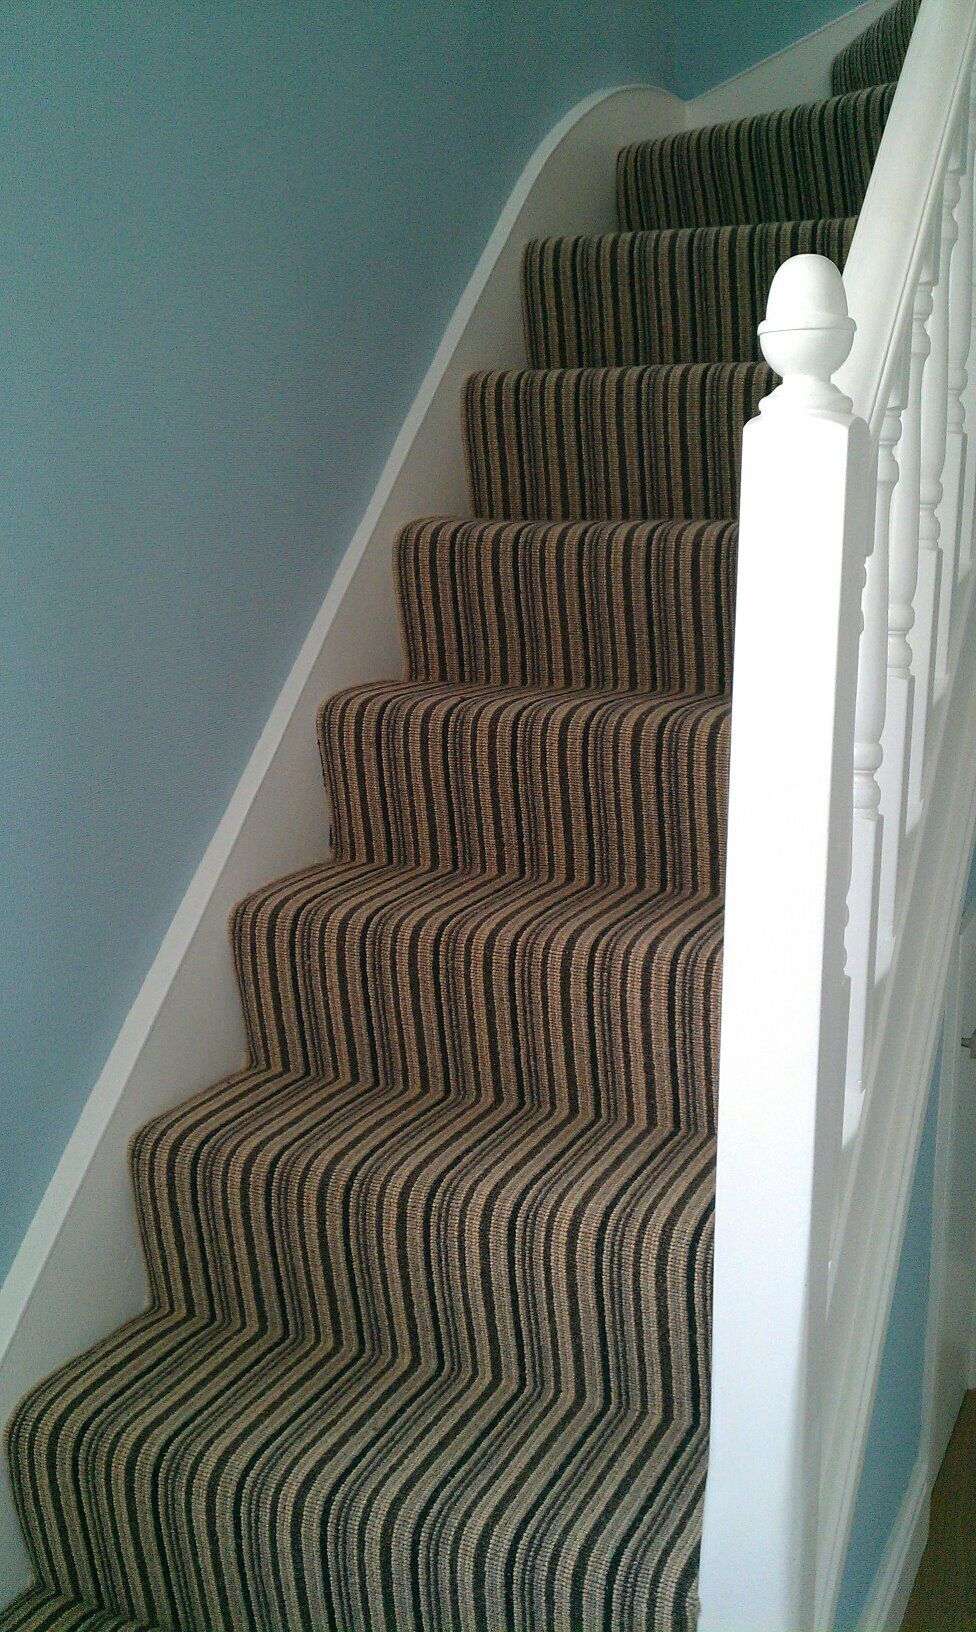 Pin By Ann Carpenter On Striped Carpet Stairs Hall Decor New Home Wishes